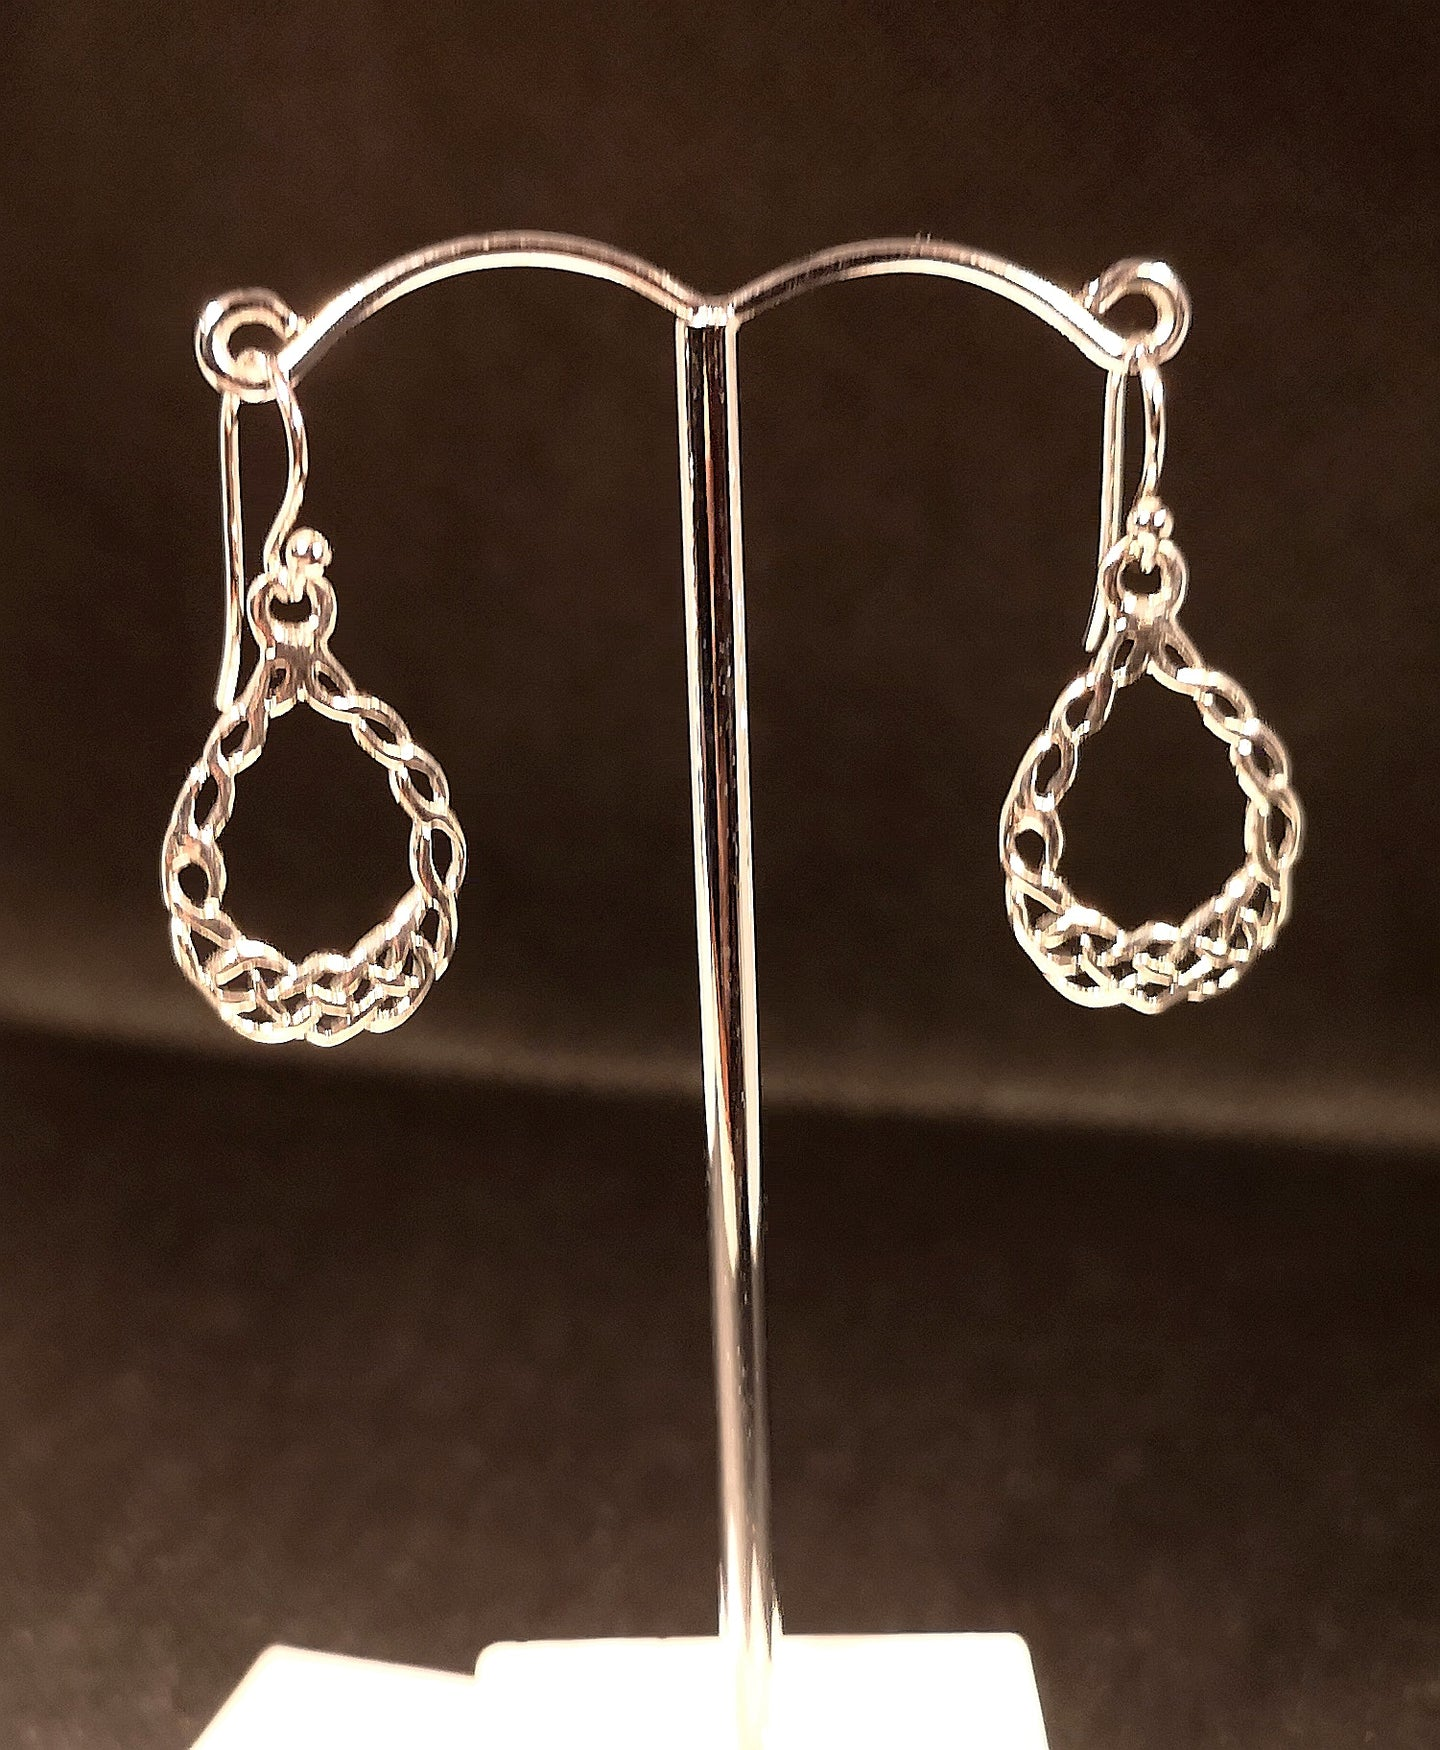 sterling silver earrings with Celtic design